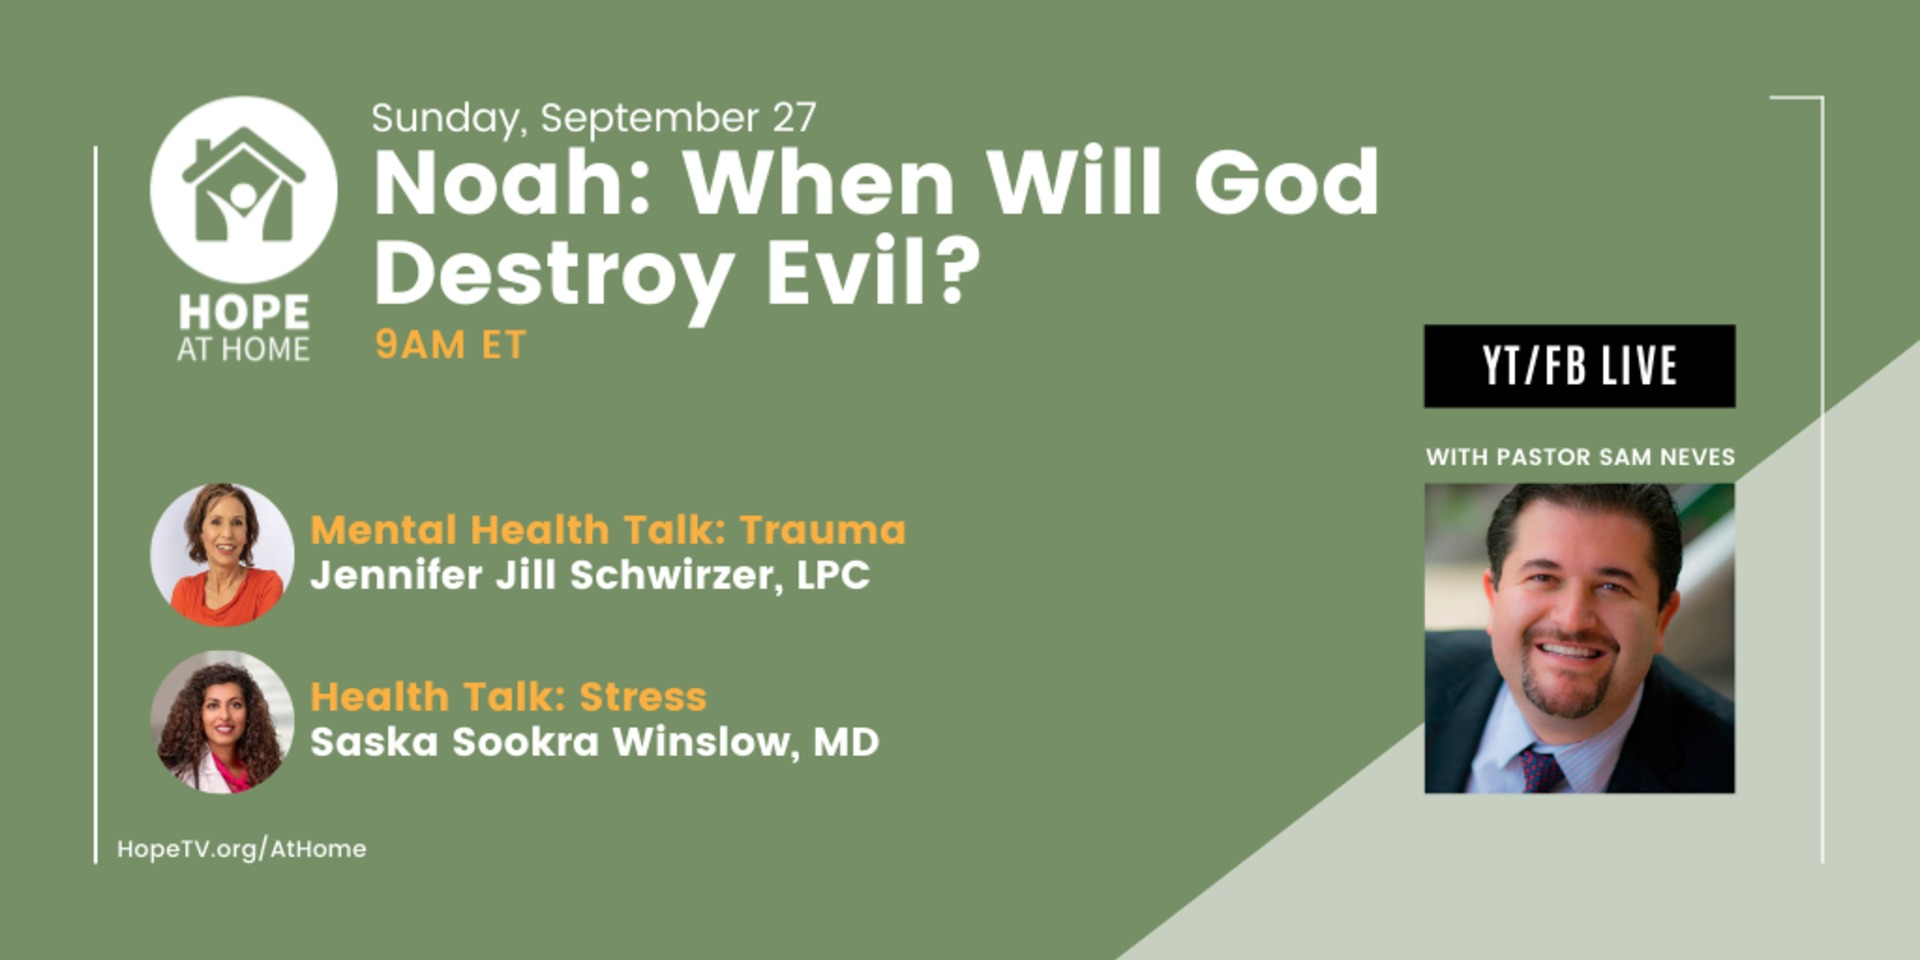 Noah: When Will God Destroy Evil?